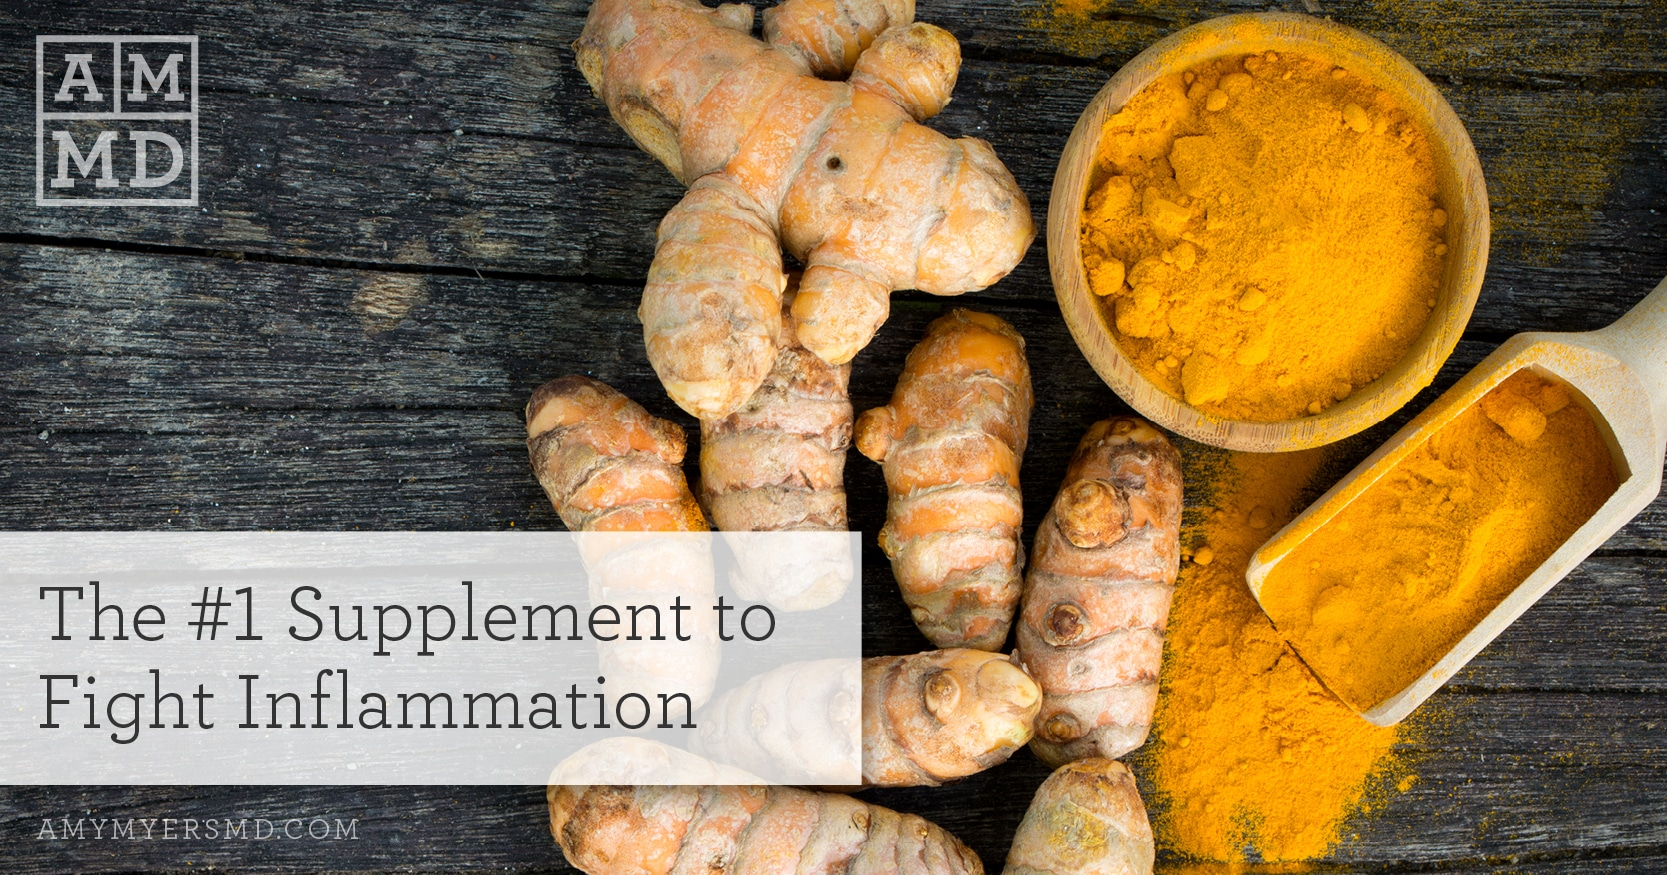 The #1 Supplement to Fight Inflammation - Amy Myers MD